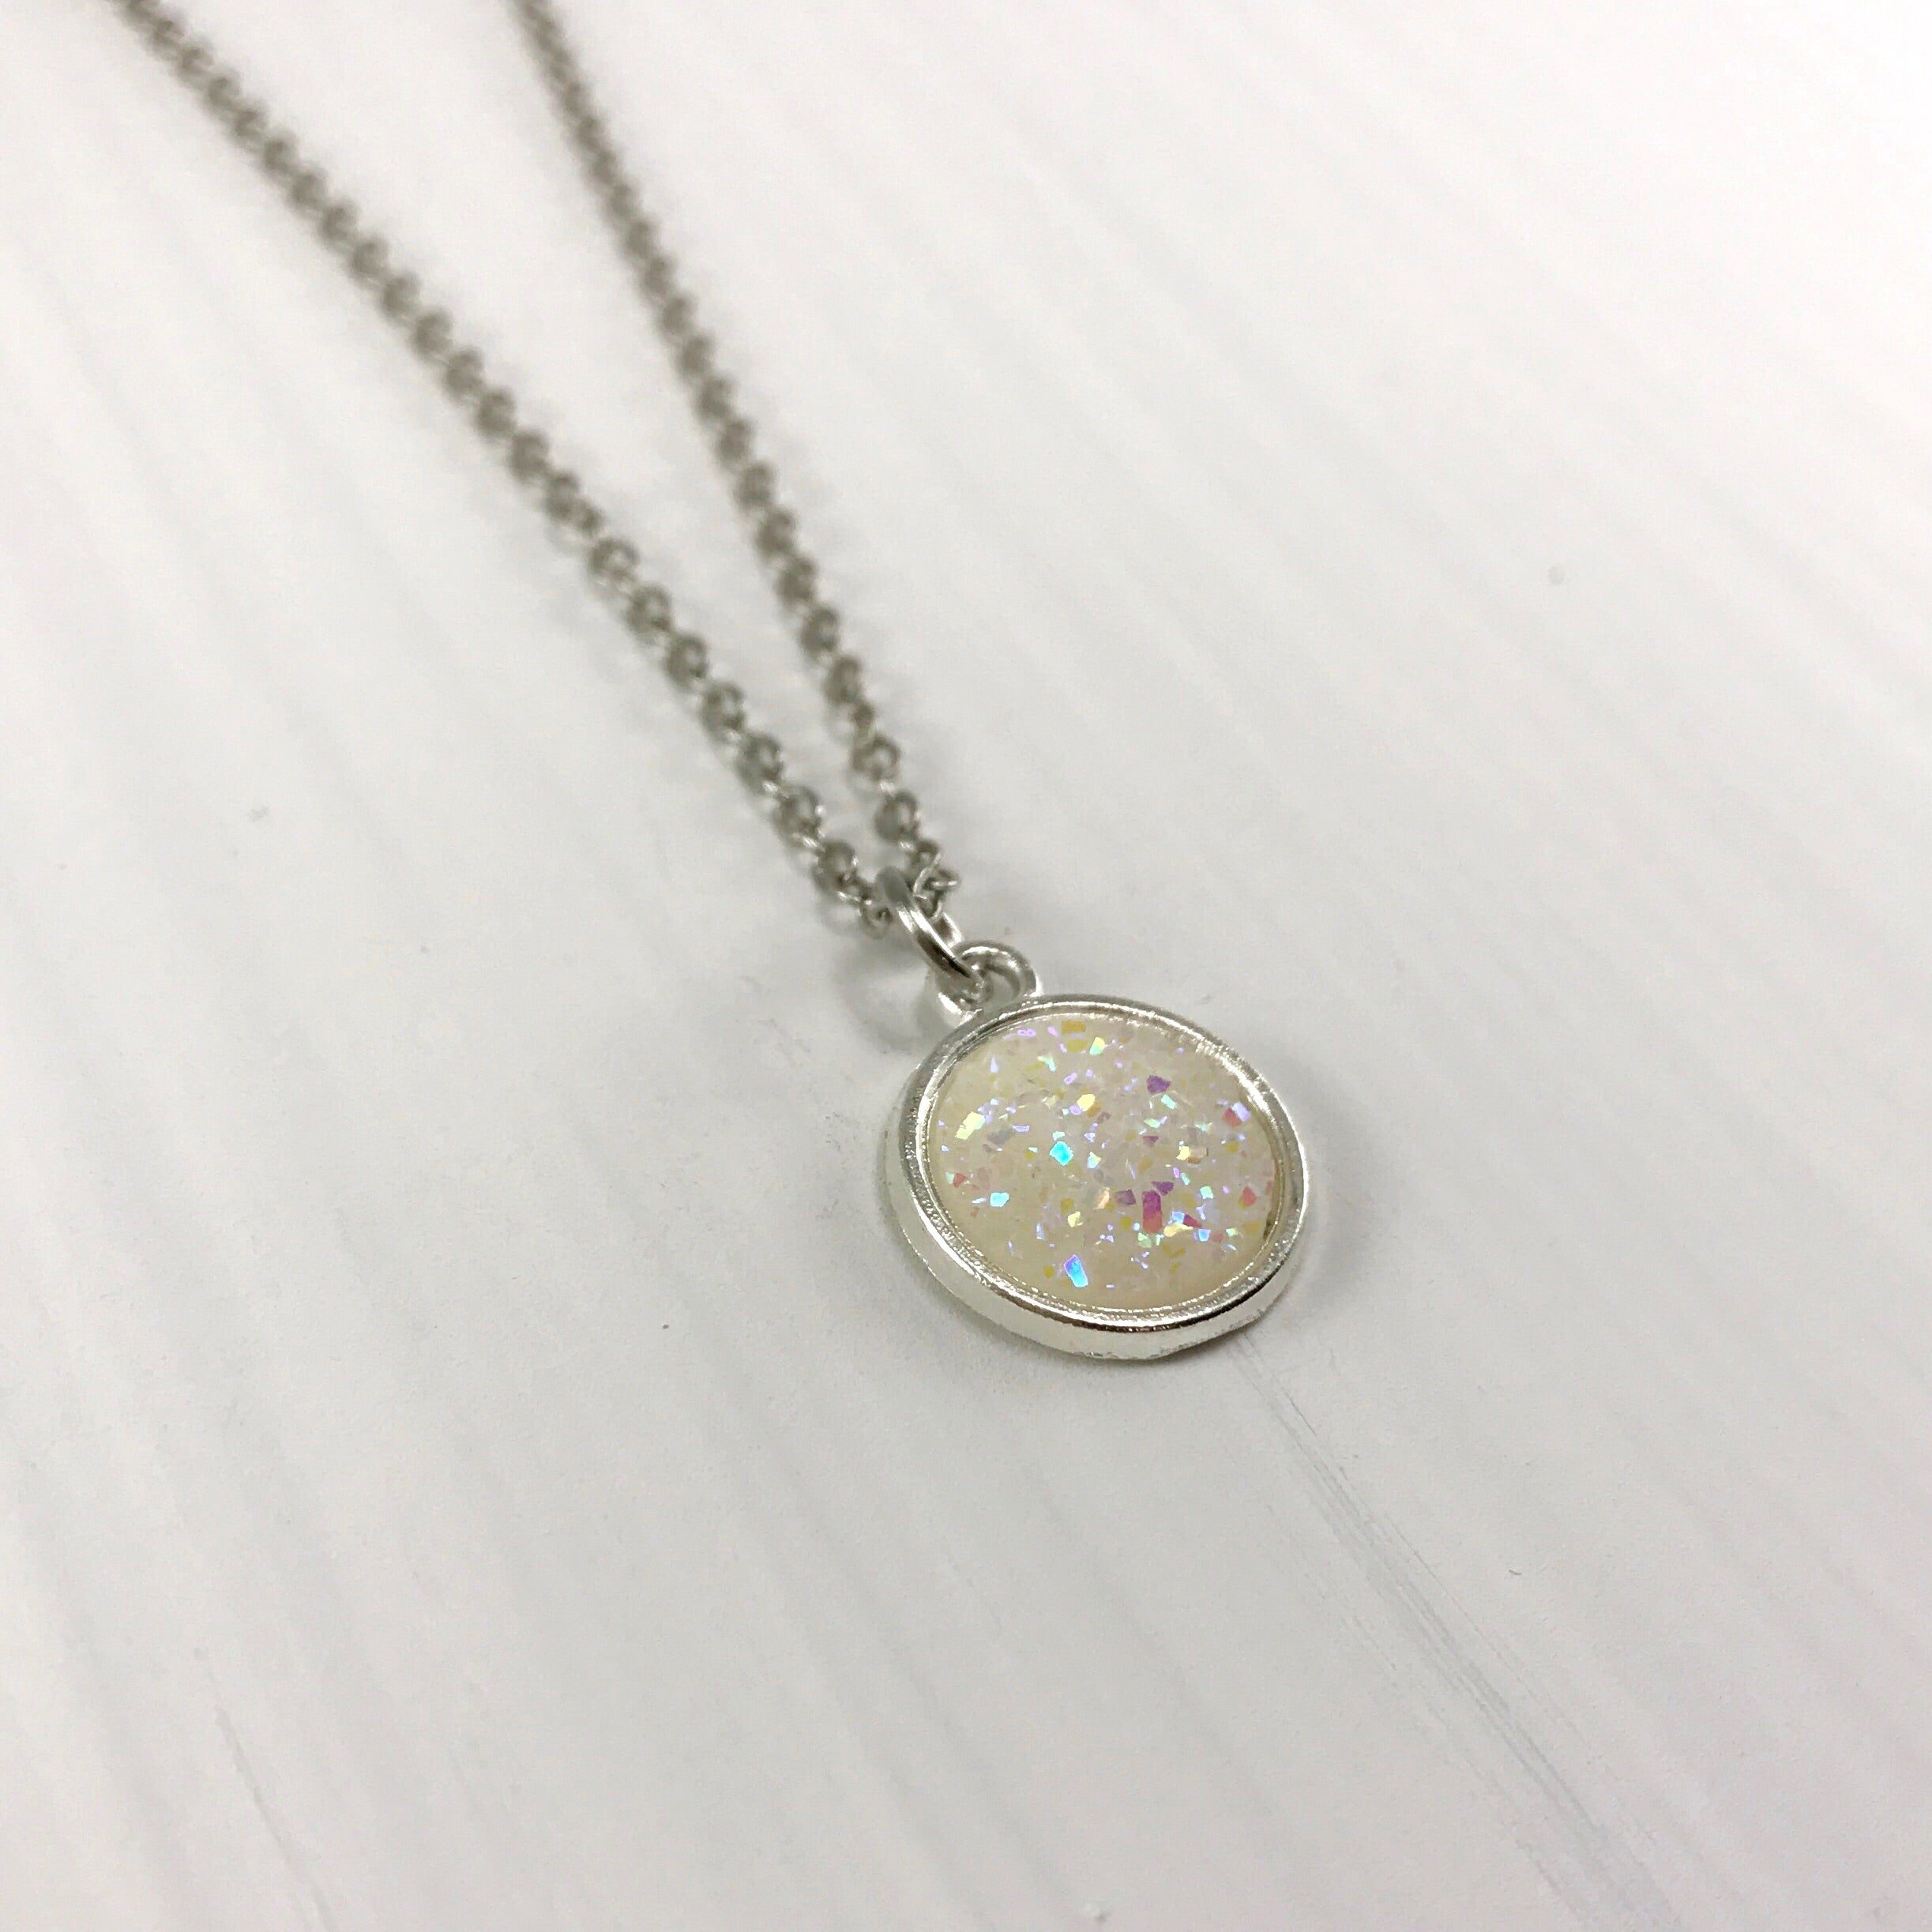 Iridescent White Faux Druzy Necklace - Small